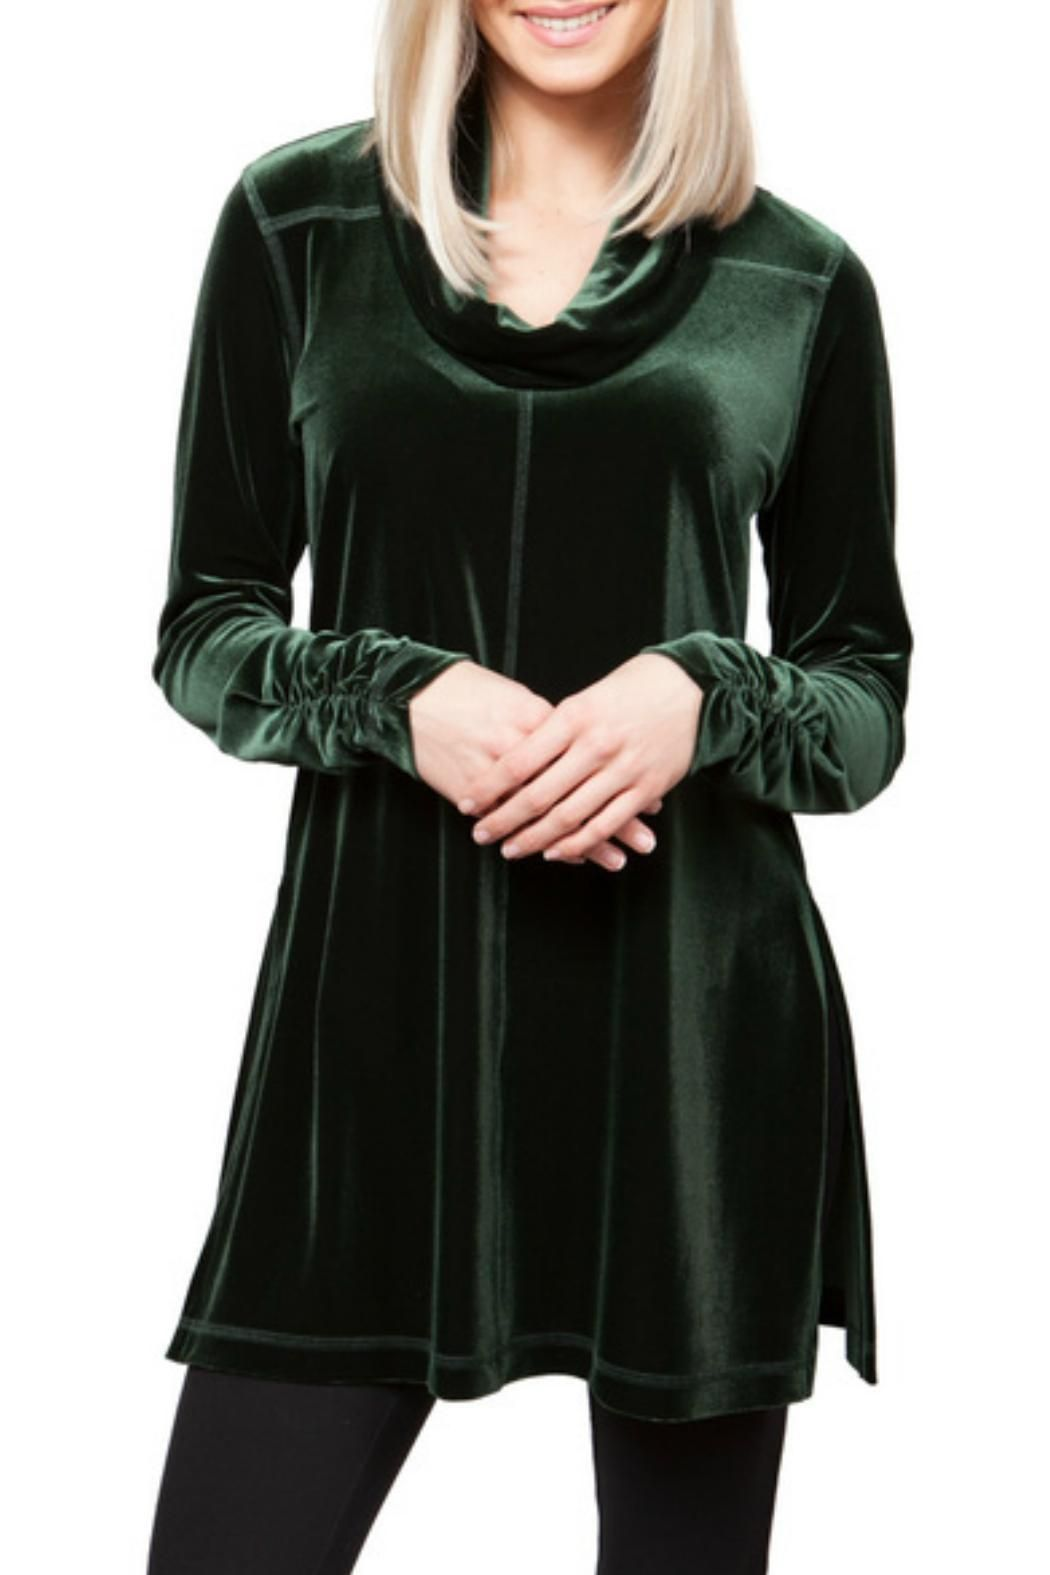 Deep emerald plush velvet tunic. Soft cowl neckline. Emerald Velvet Tunic  by Sno Skins. Clothing - Tops - Long Sleeve Clothing - Tops - Tunics Texas